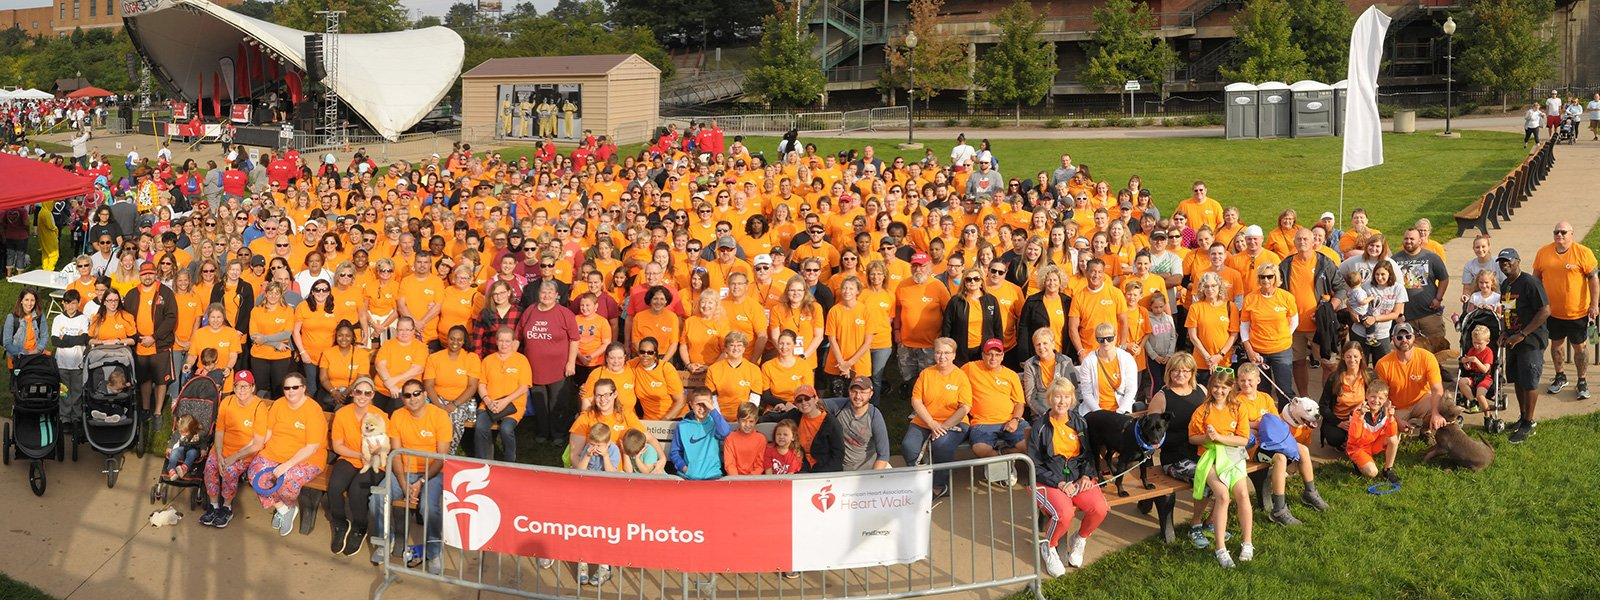 run-walk events akron cleveland | crowd of people posing in front of the american heart association banner